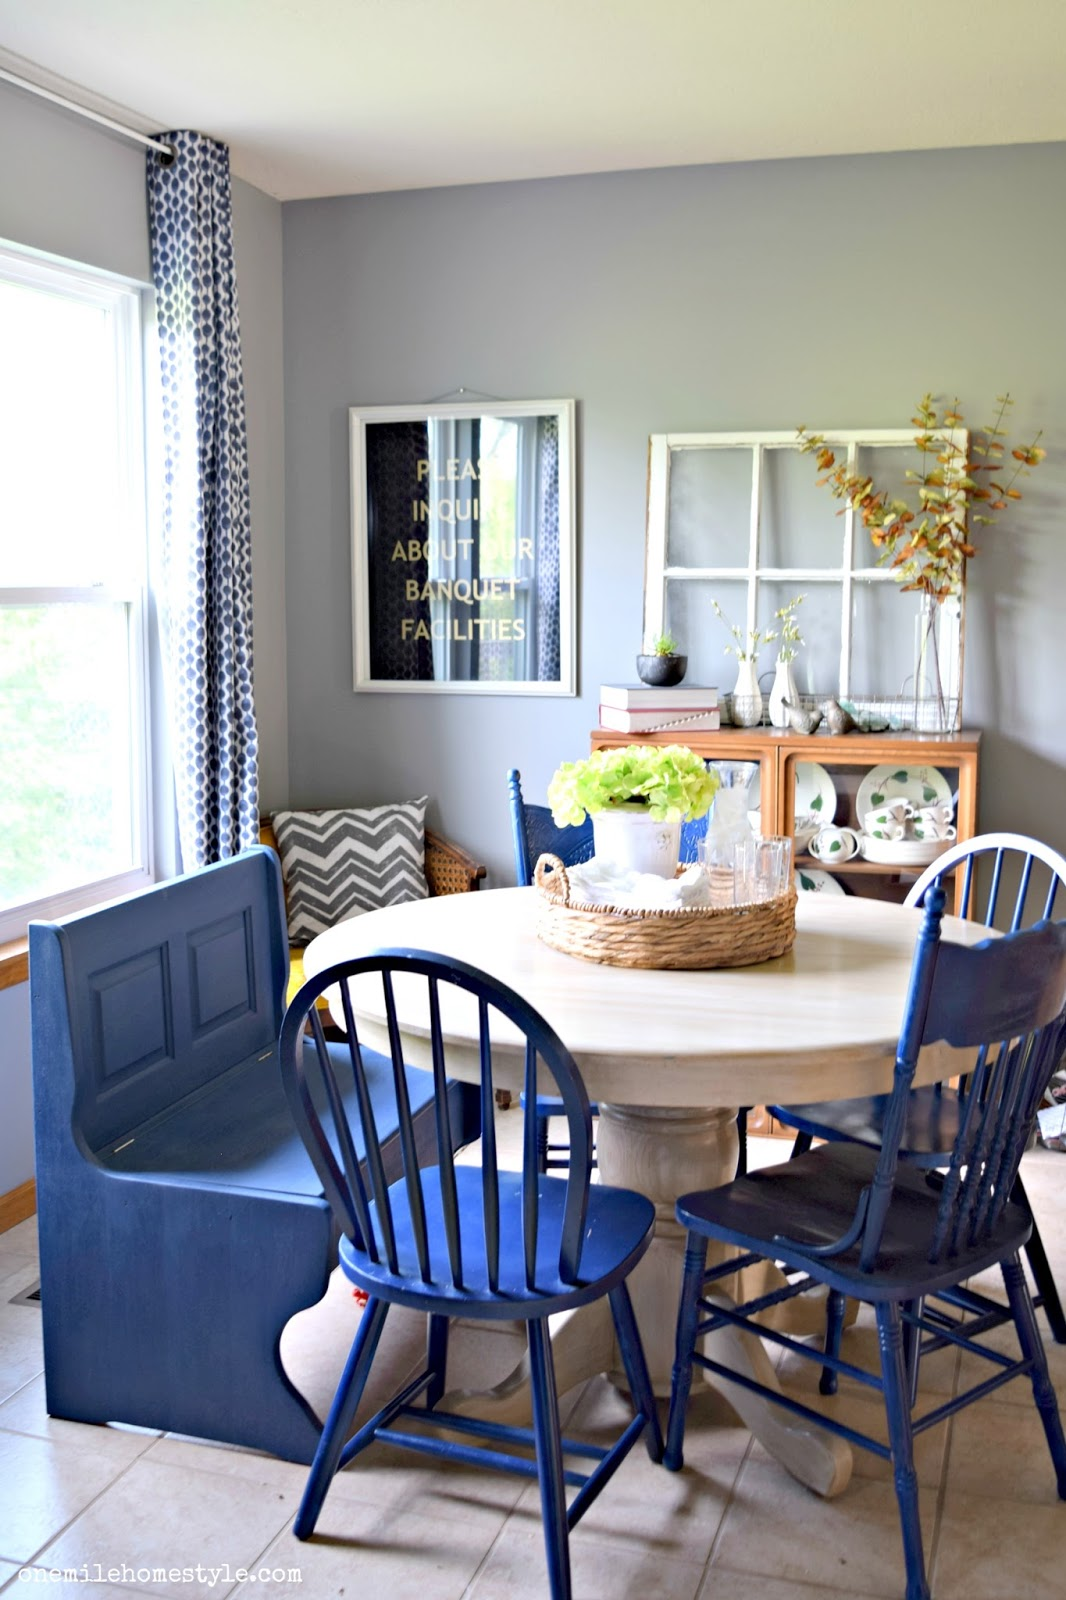 farmhouse kitchen bench makeover with diva of diy s chalk mix paint navy blue farmhouse kitchen bench makeover with diva of diy chalk mix paint